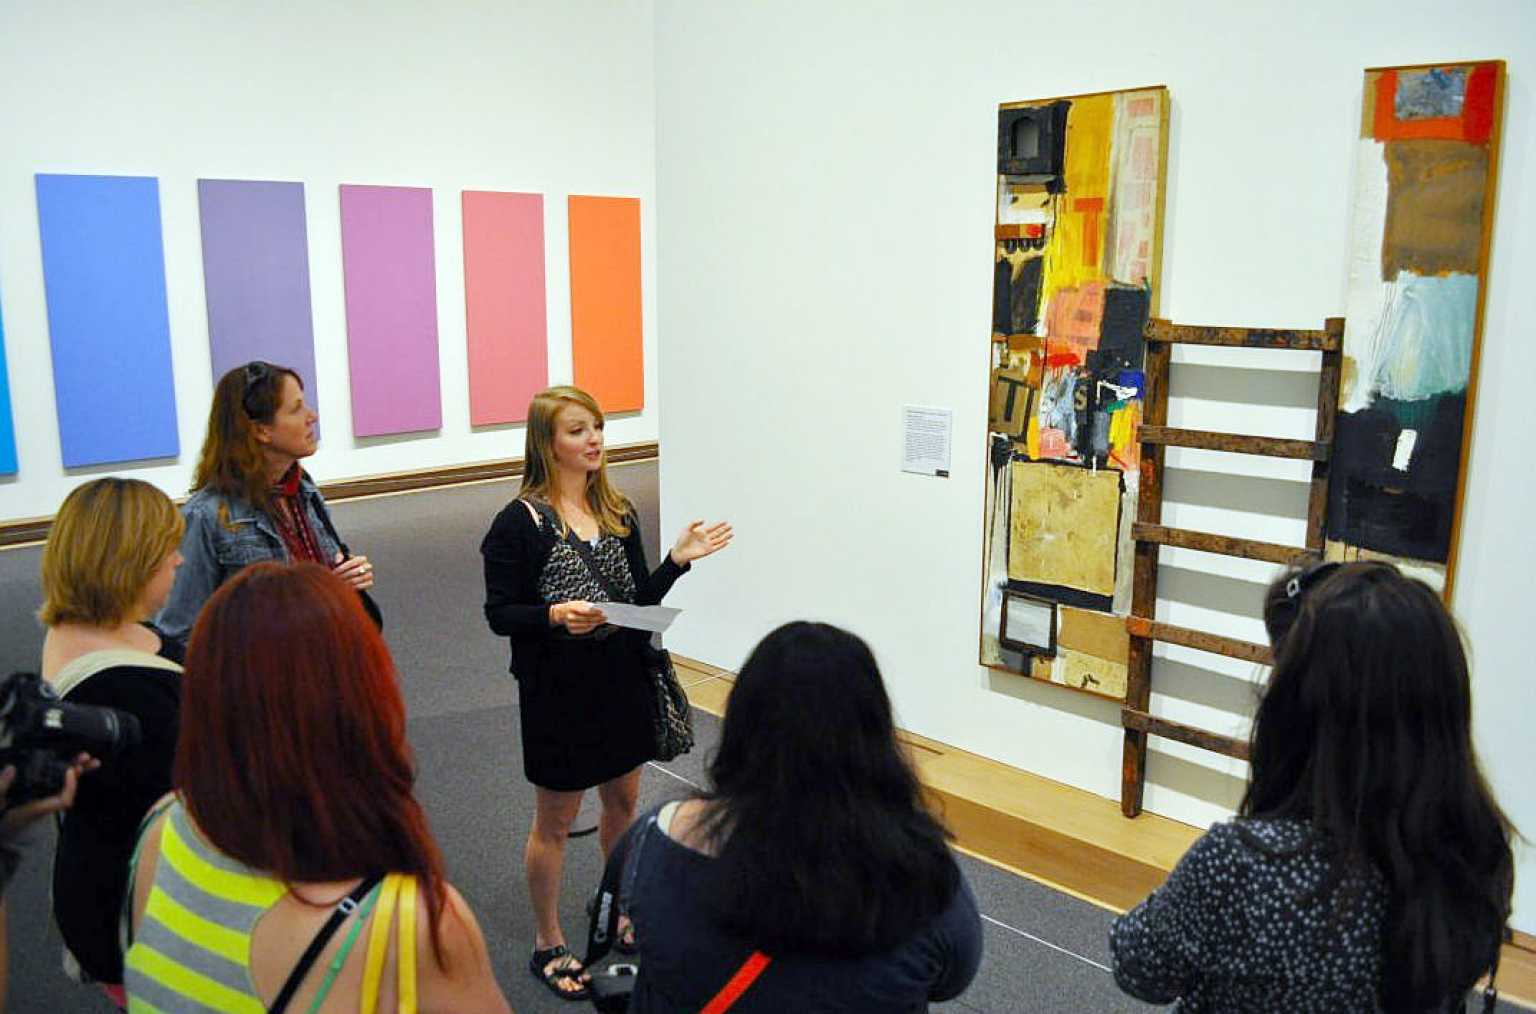 Art history students discussing artwork at NY museum